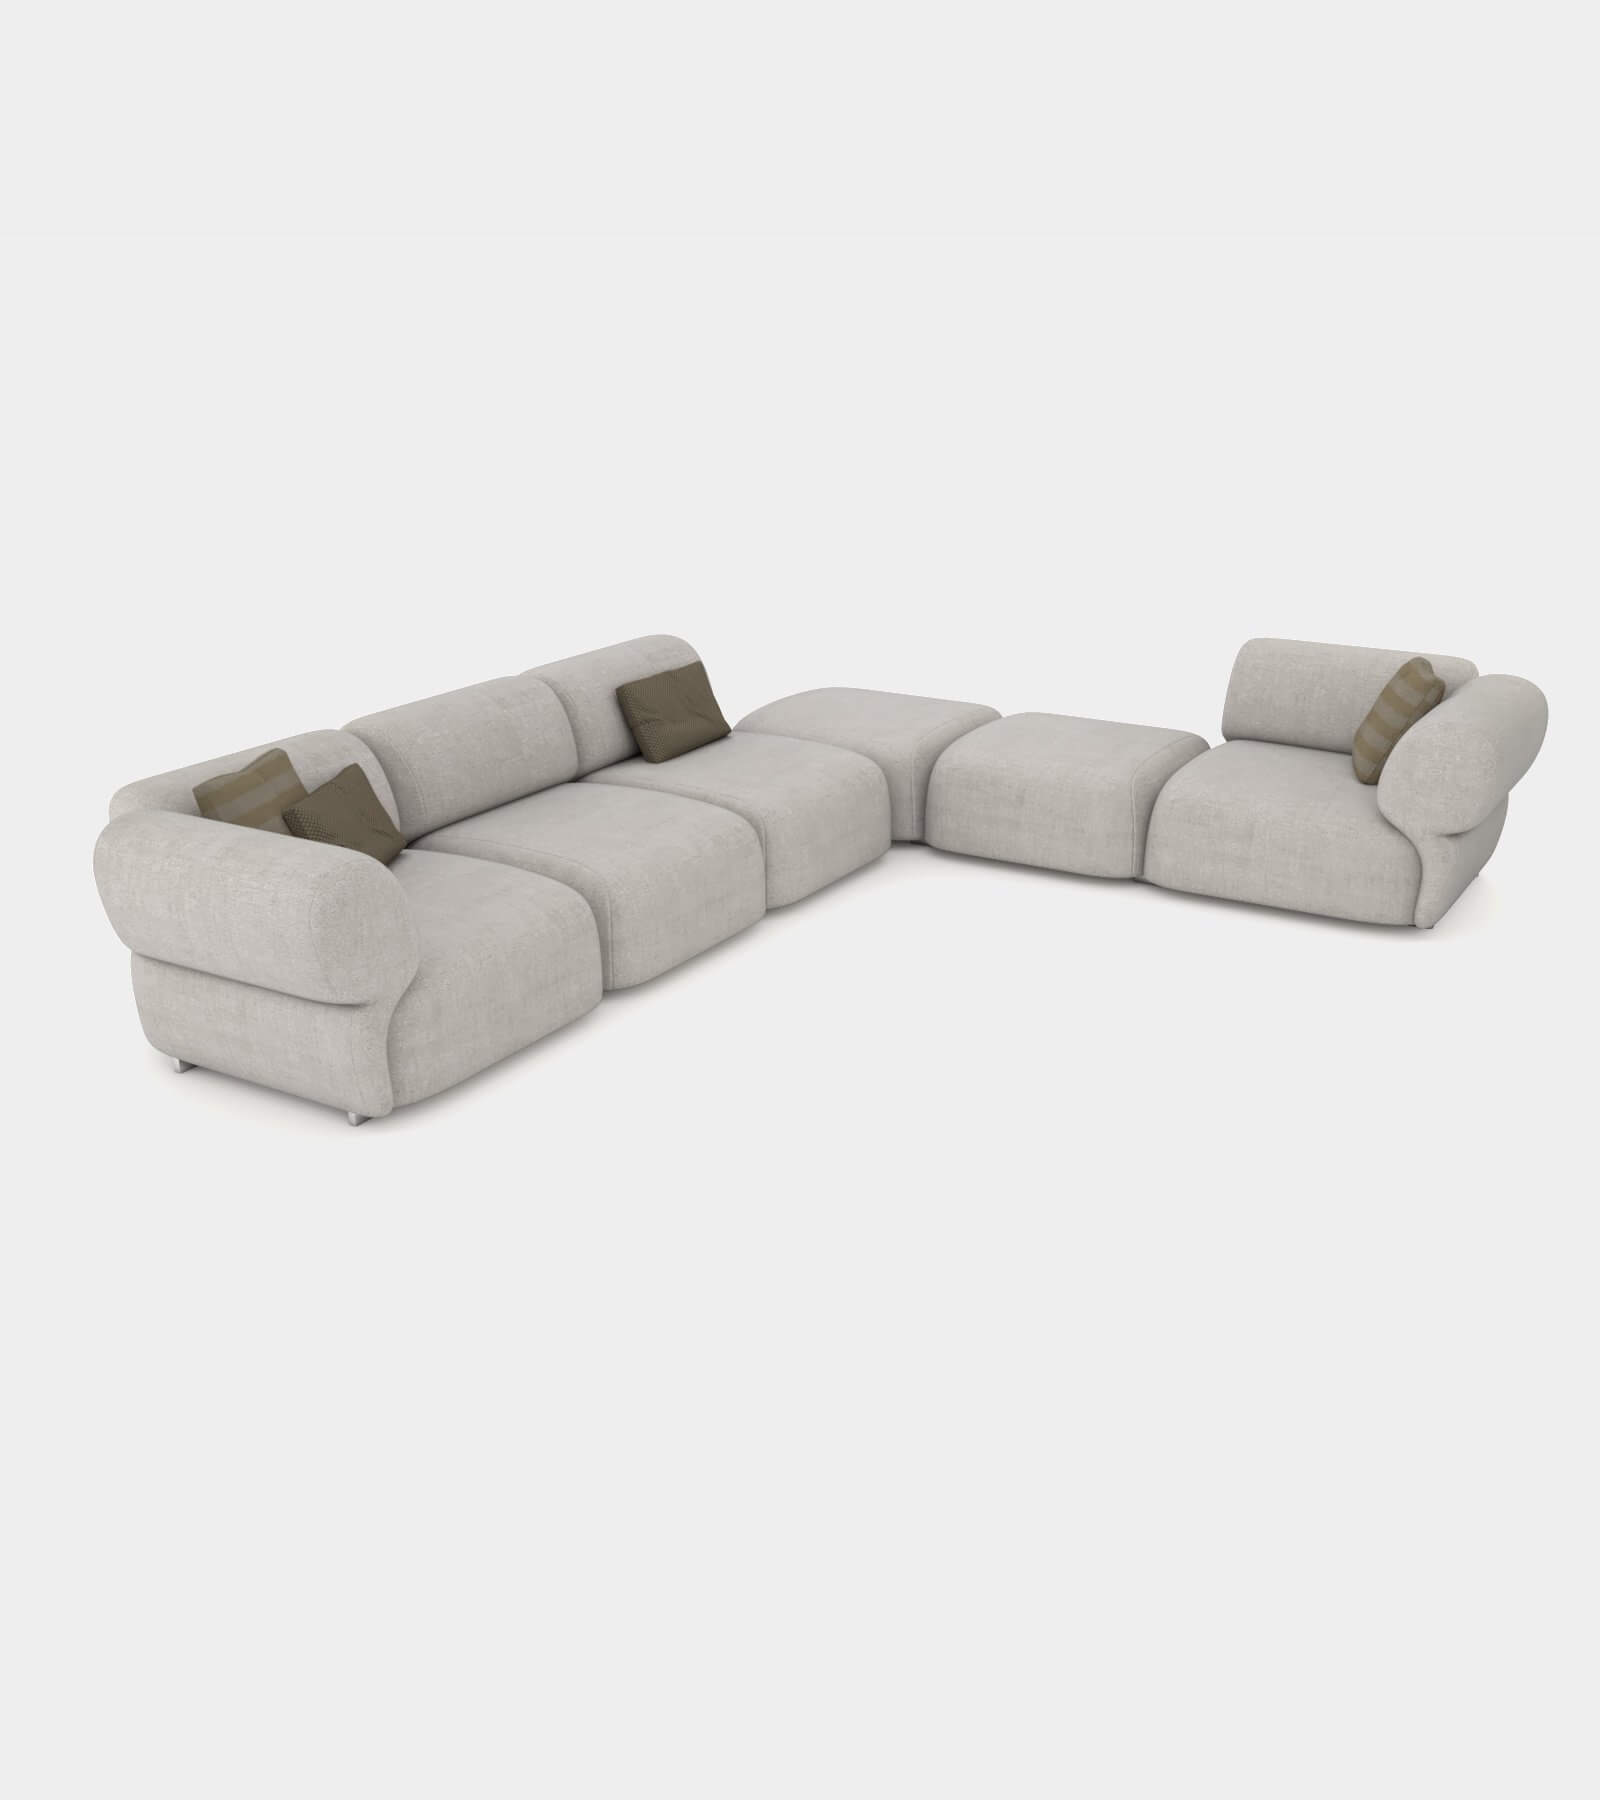 Cozy sofa with round shapes - 3D Model